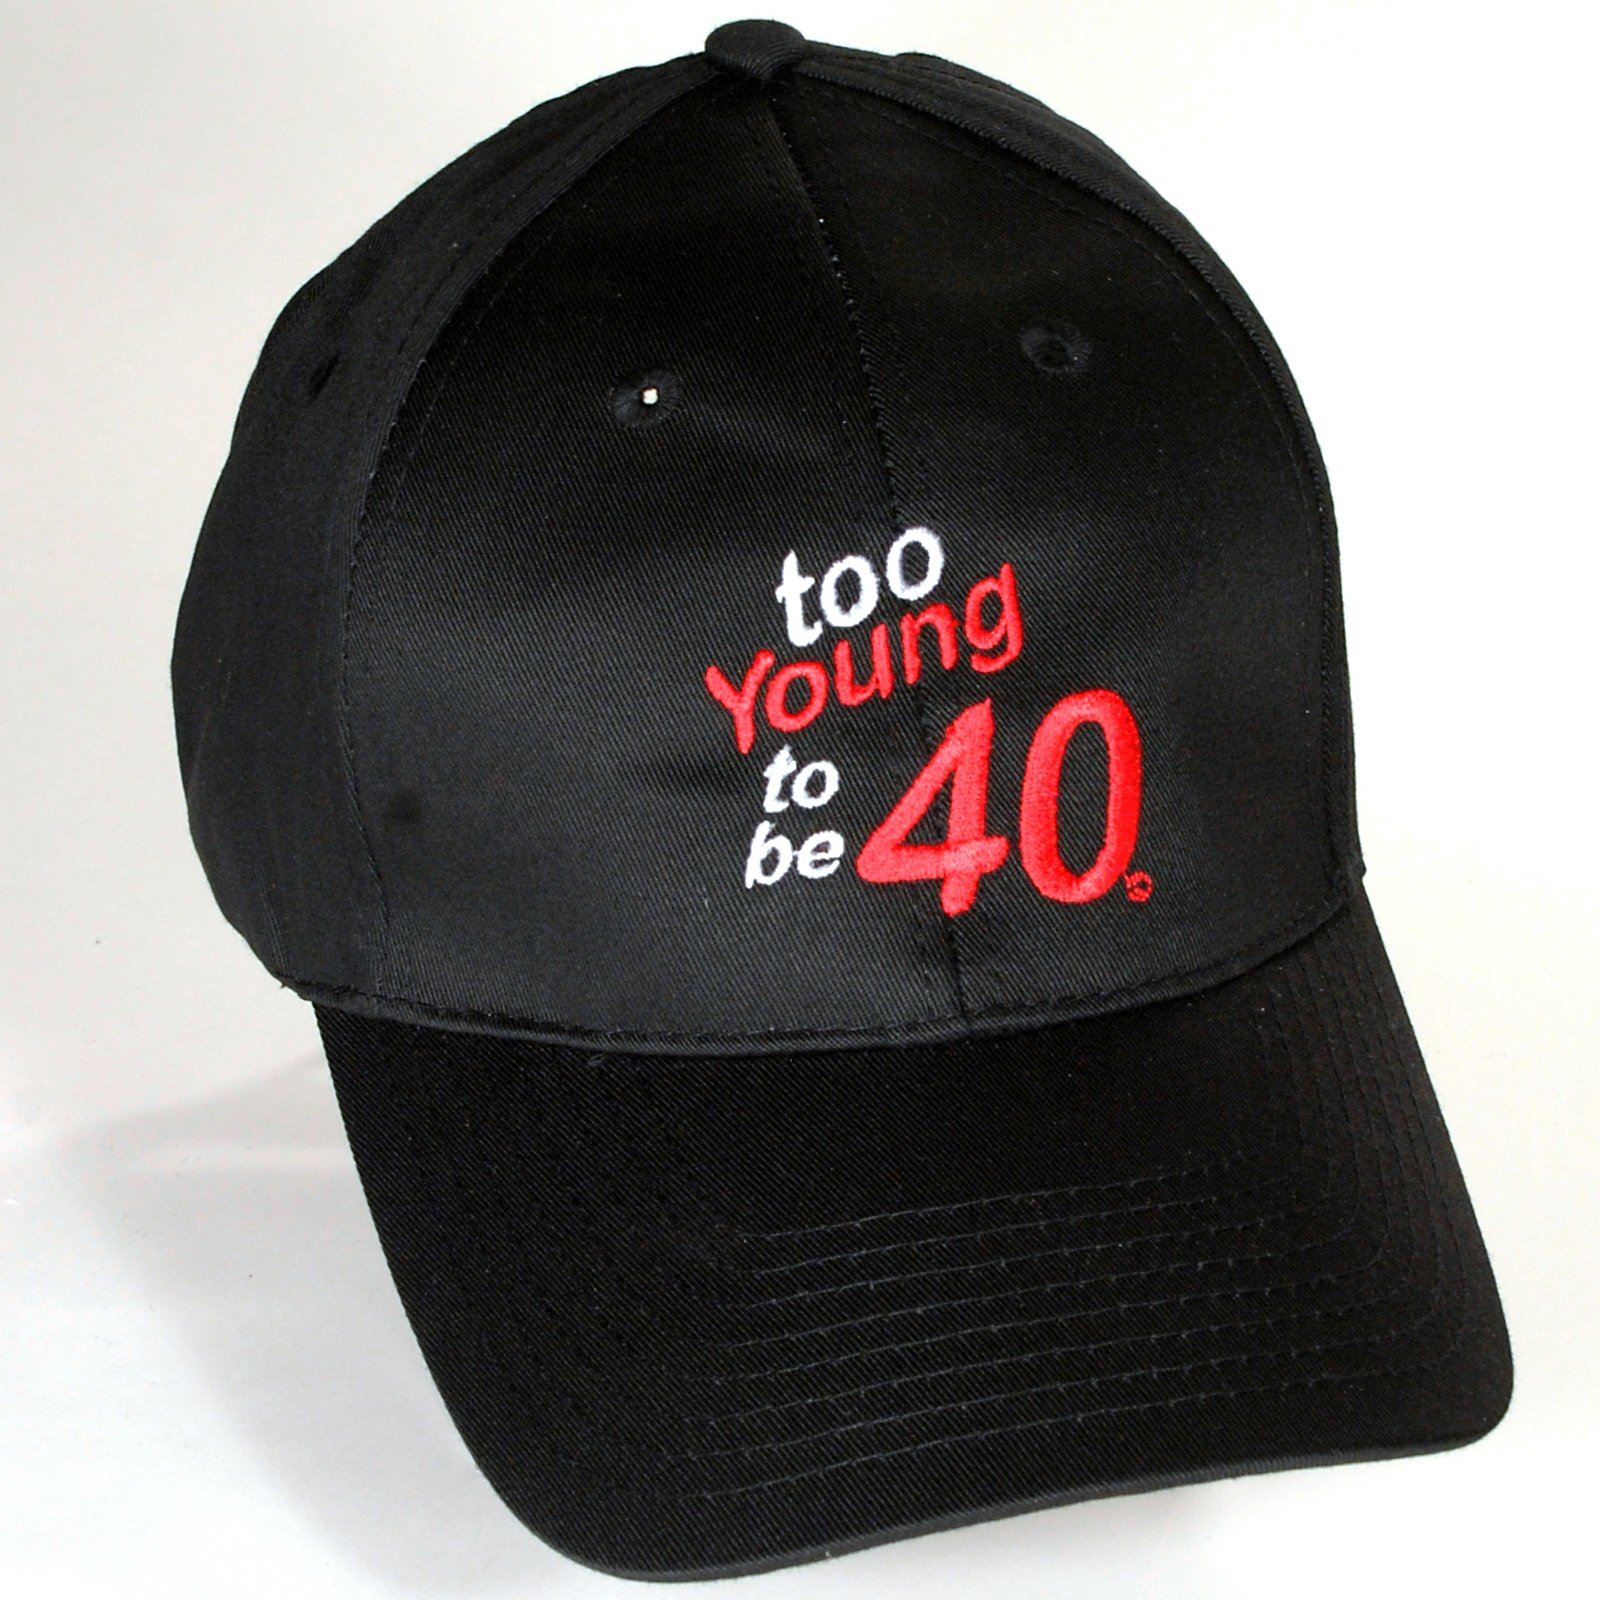 Too Young to be 40 Cap